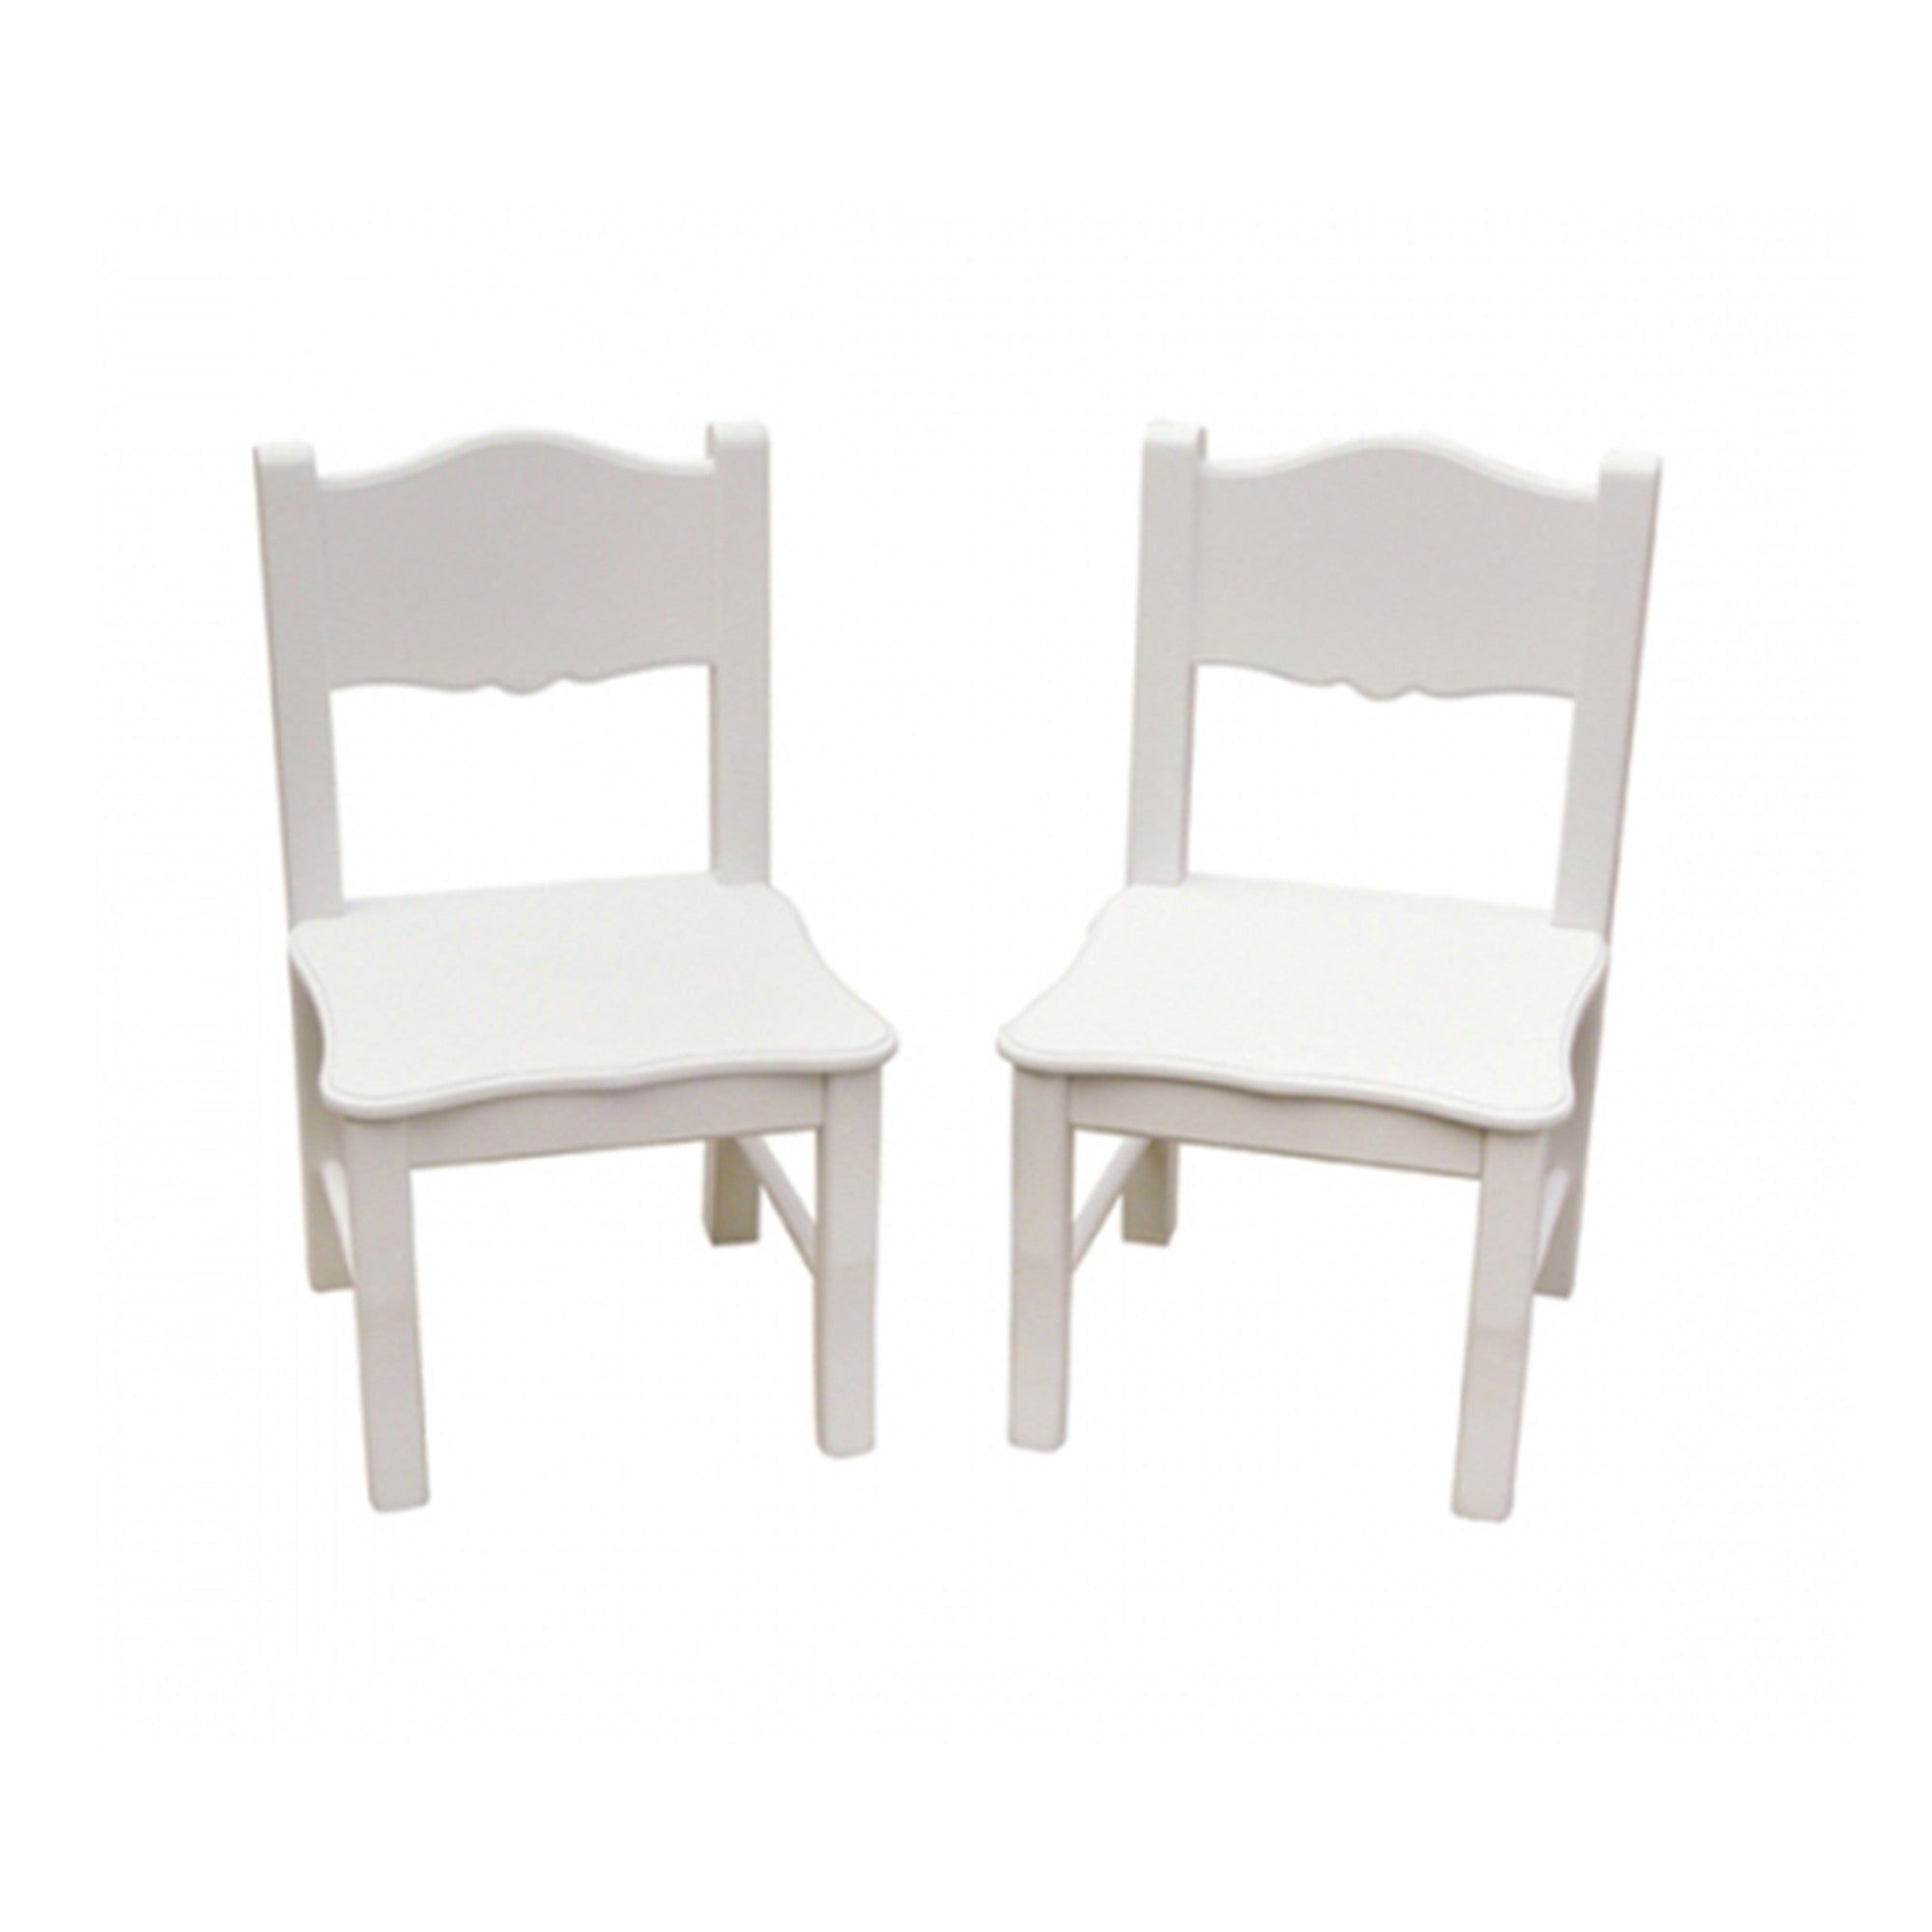 Guidecraft Classic White Extra Chairs G85703